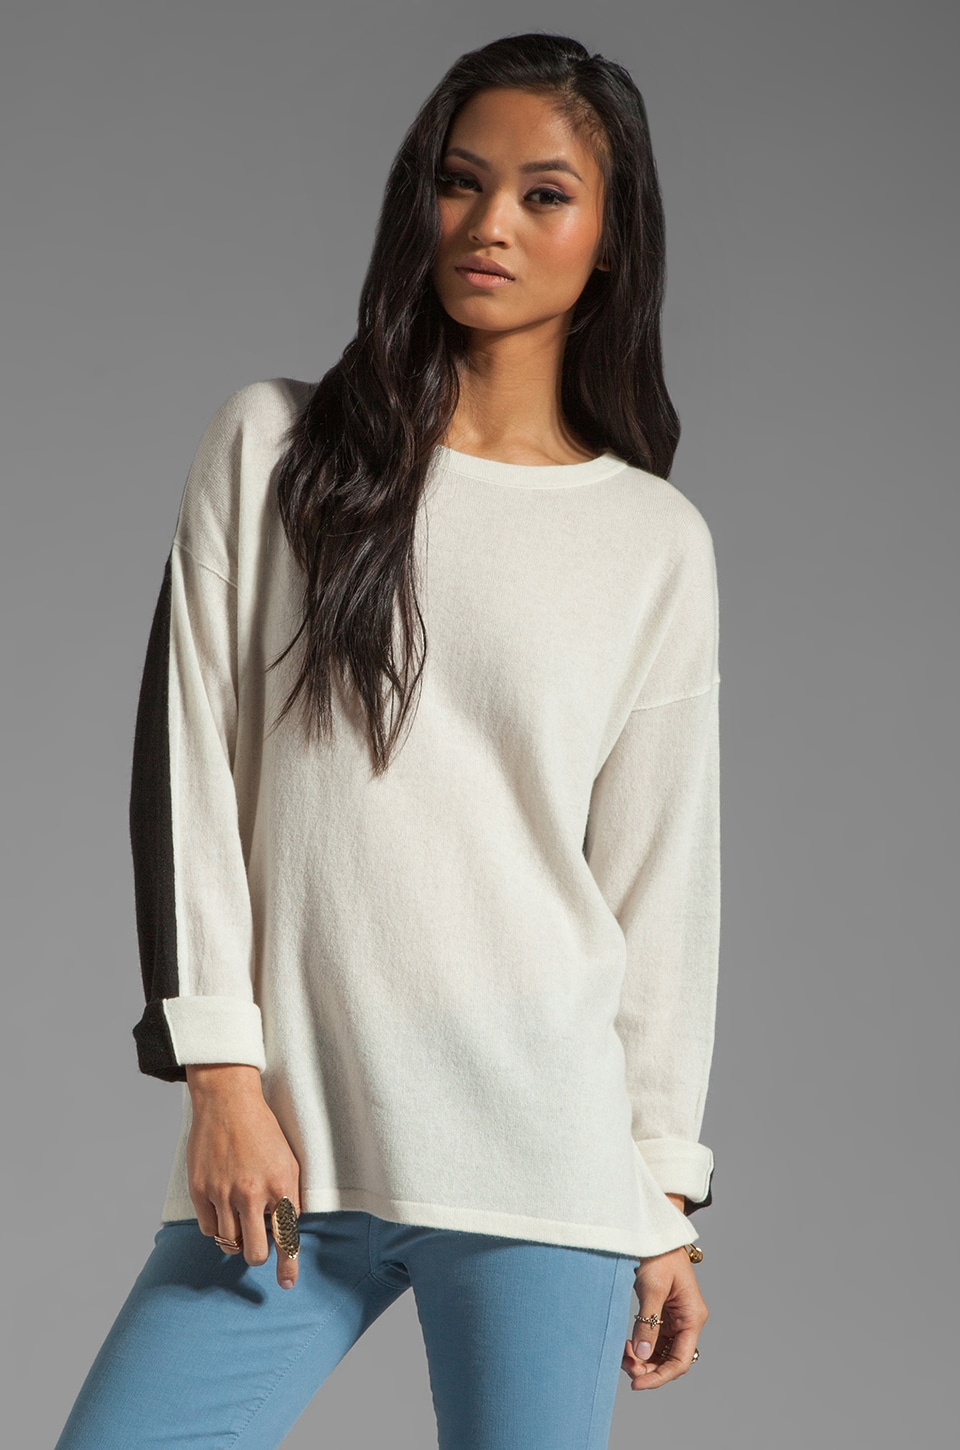 Vince Colorblock L/S Side Slit Sweater in Dew/Black